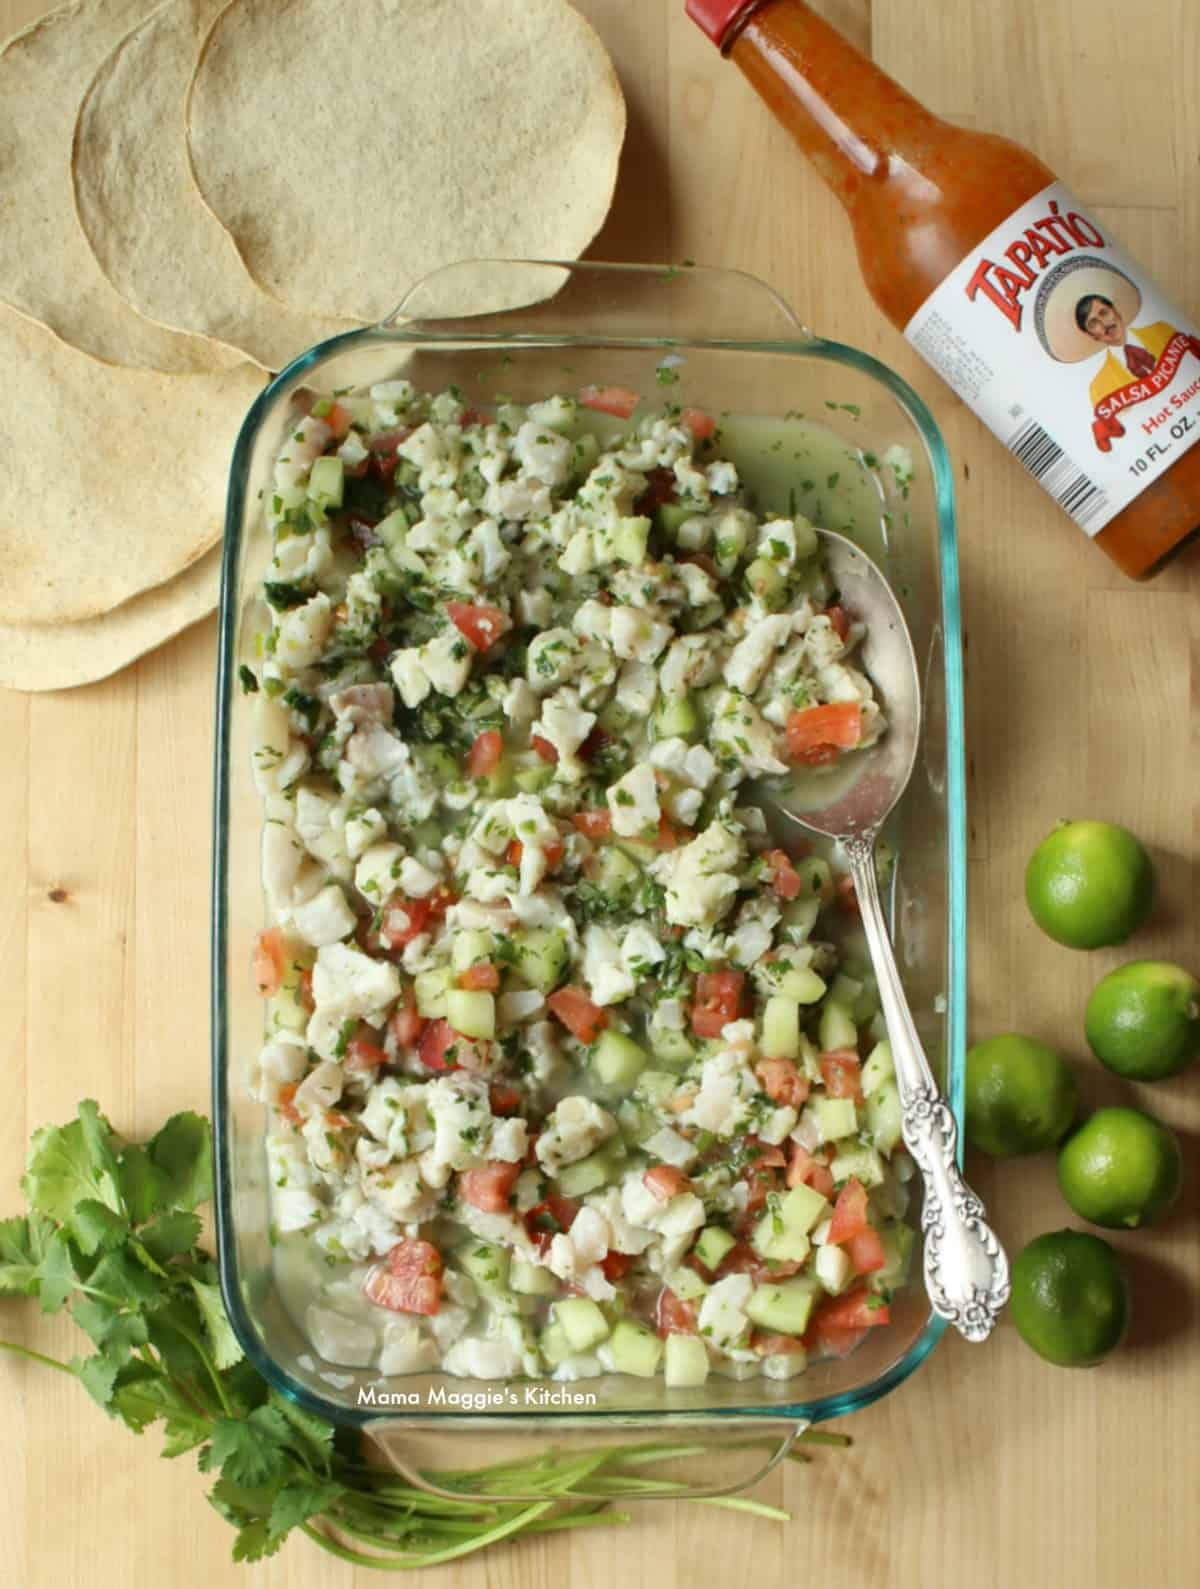 Fish ceviche in a baking dish surrounded by lime, cilantro, hot sauce, and tostadas.